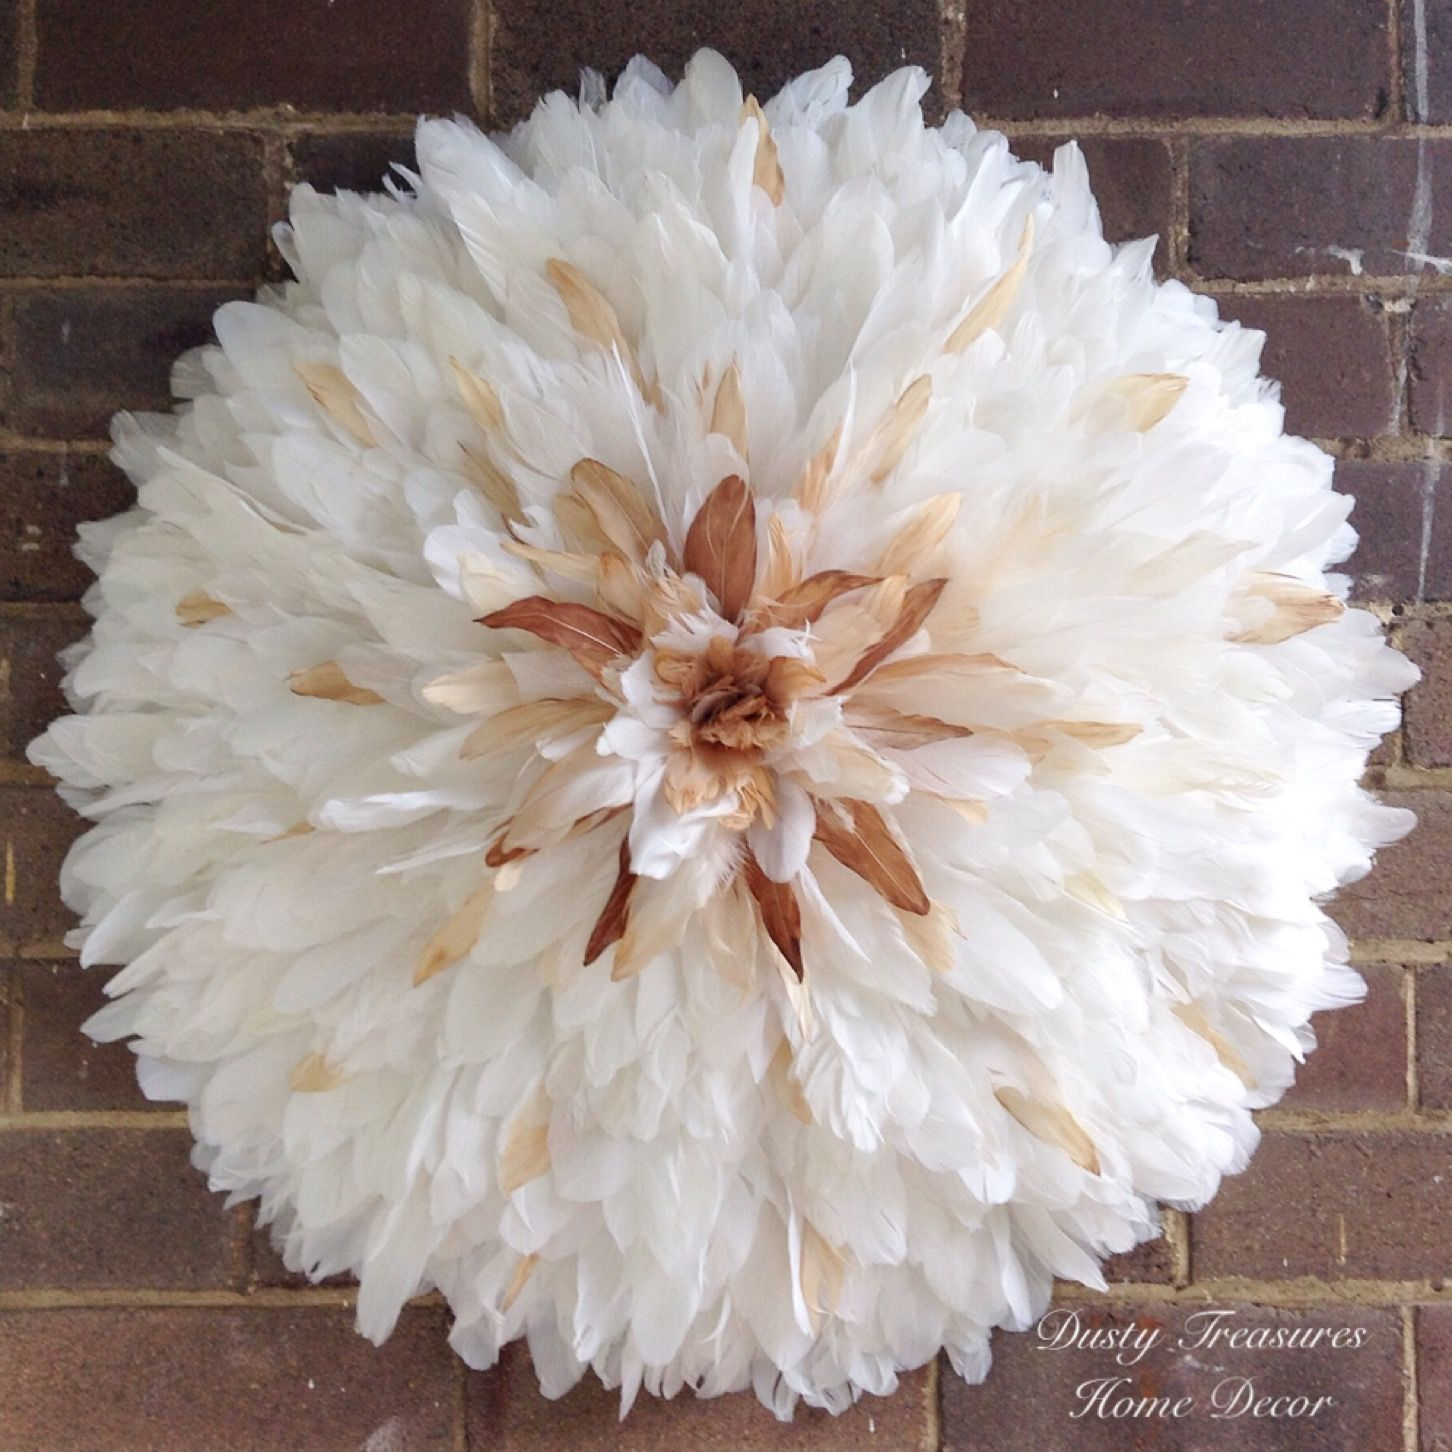 Goose Feathers Juju Hat Designed And Made By Dusty Treasures Home Decor One Off Piece Hat Wall Juju Hat Creative Display